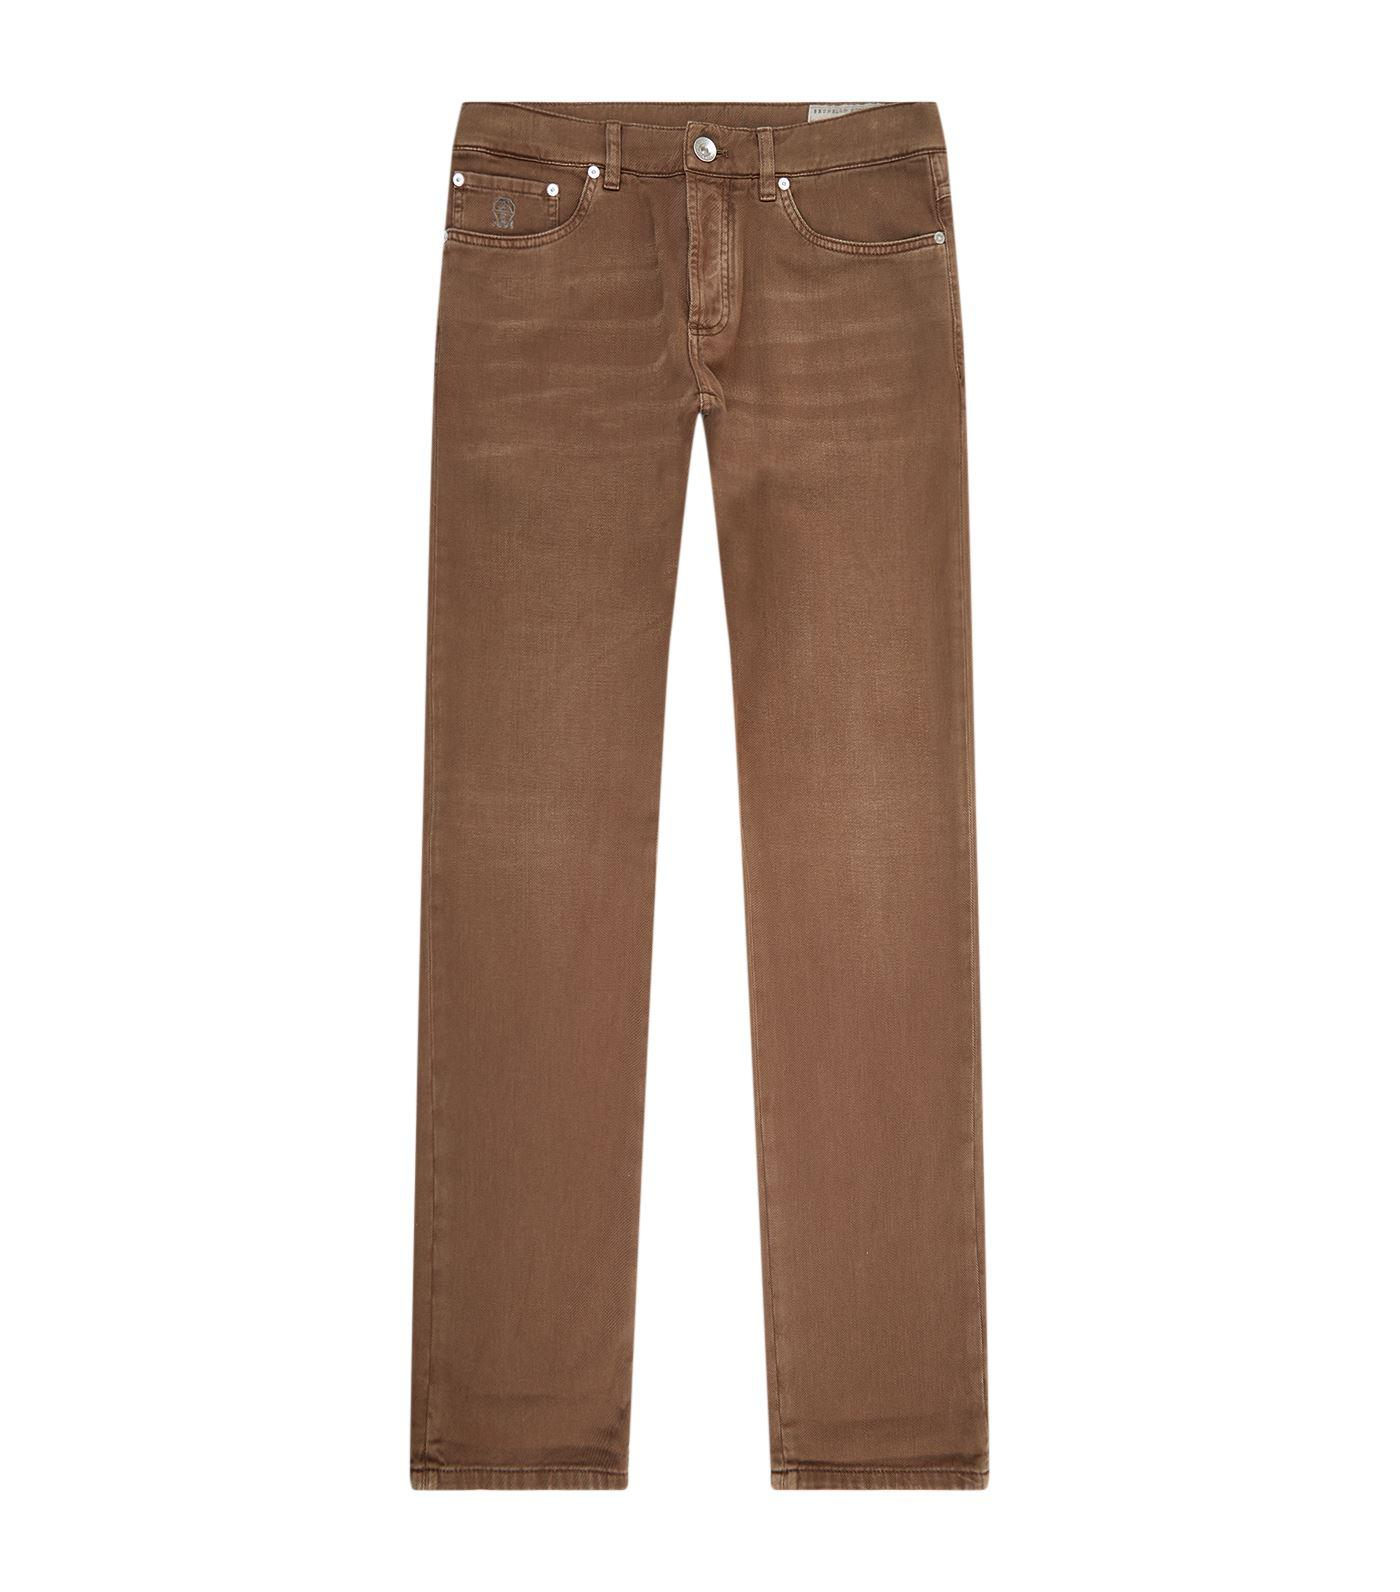 Corduroy pants Traditional Fit dark brown Brunello Cucinelli Eastbay Sale Online Wholesale Price Online For Cheap Discount Sale Sast Super Specials PeOLzVA8